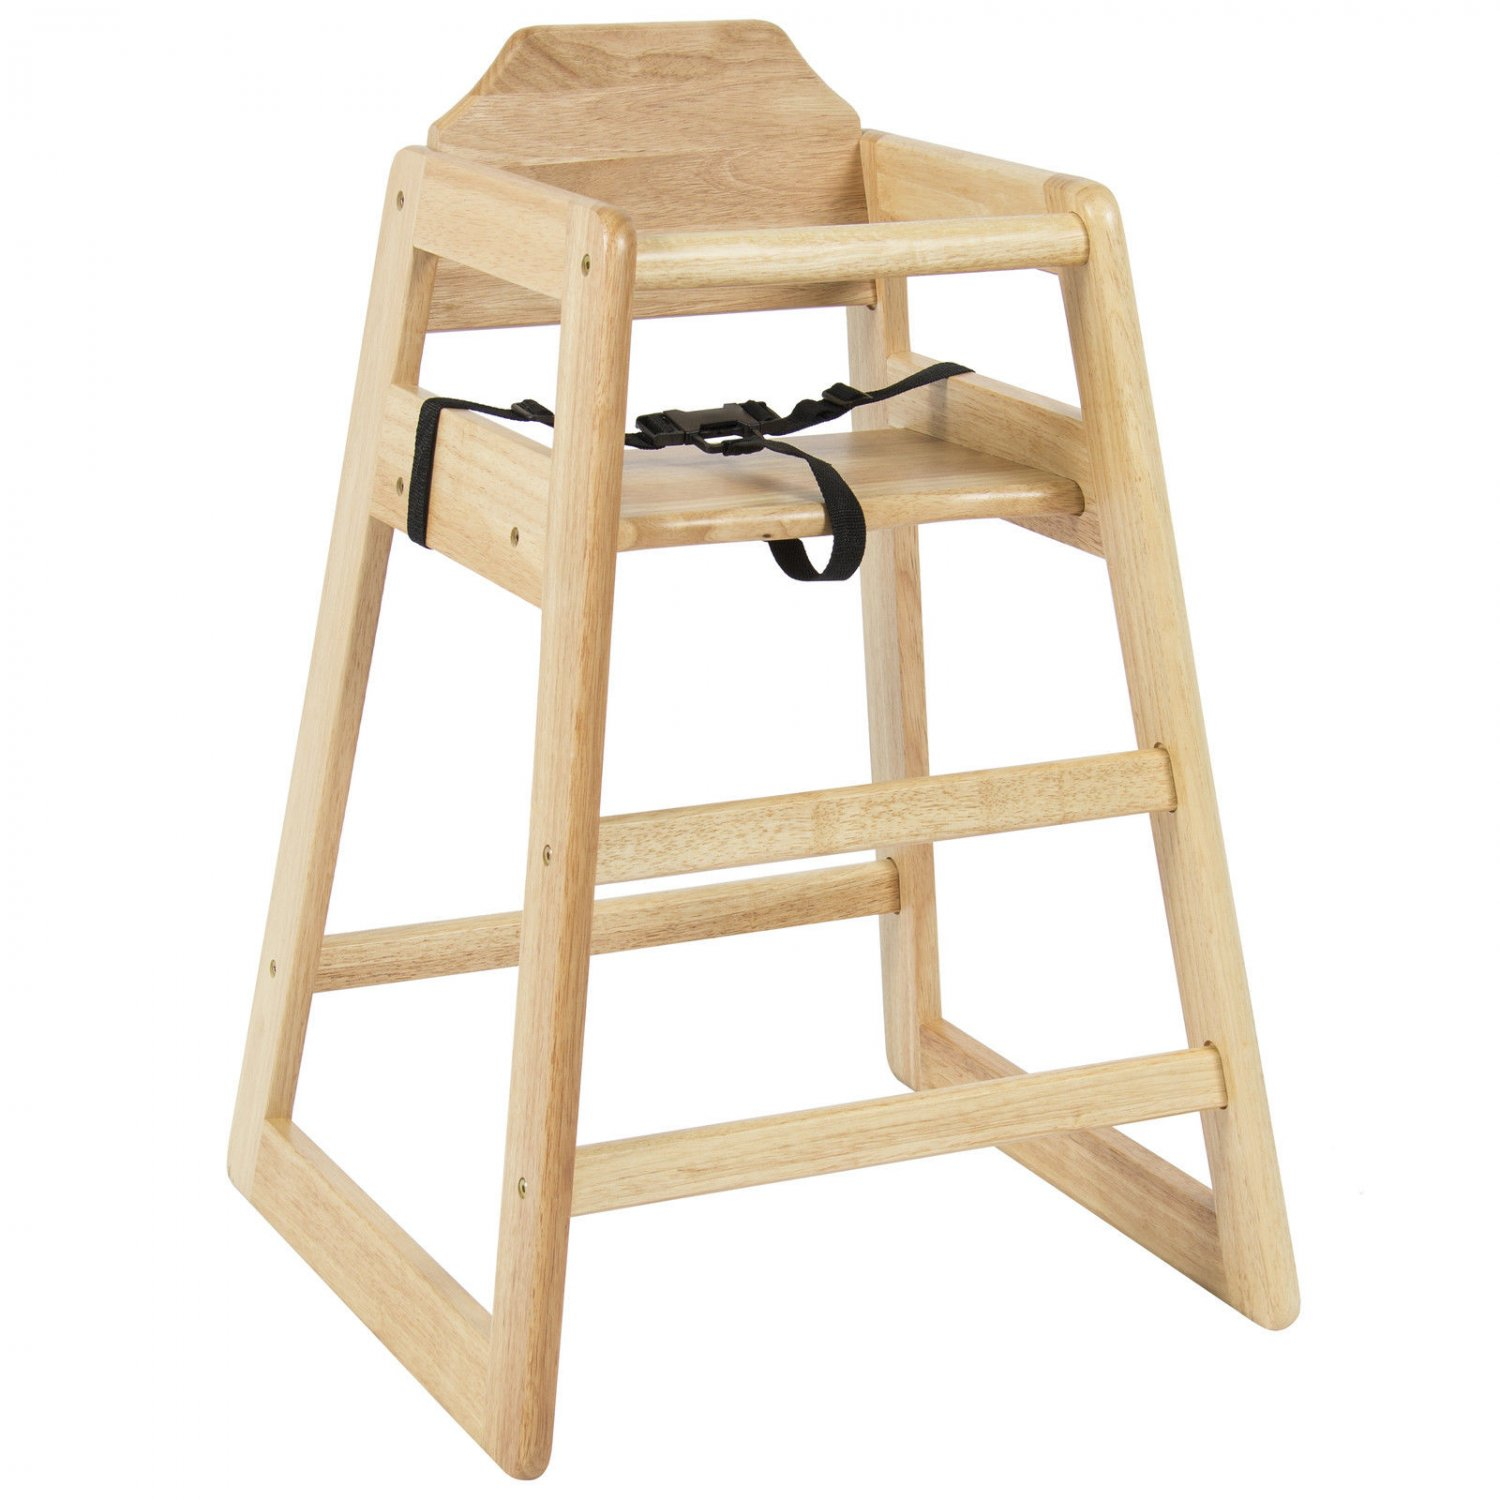 Kids Cafe Furniture: High Grade Wood Baby High Chair Kids Restaurant Stackable